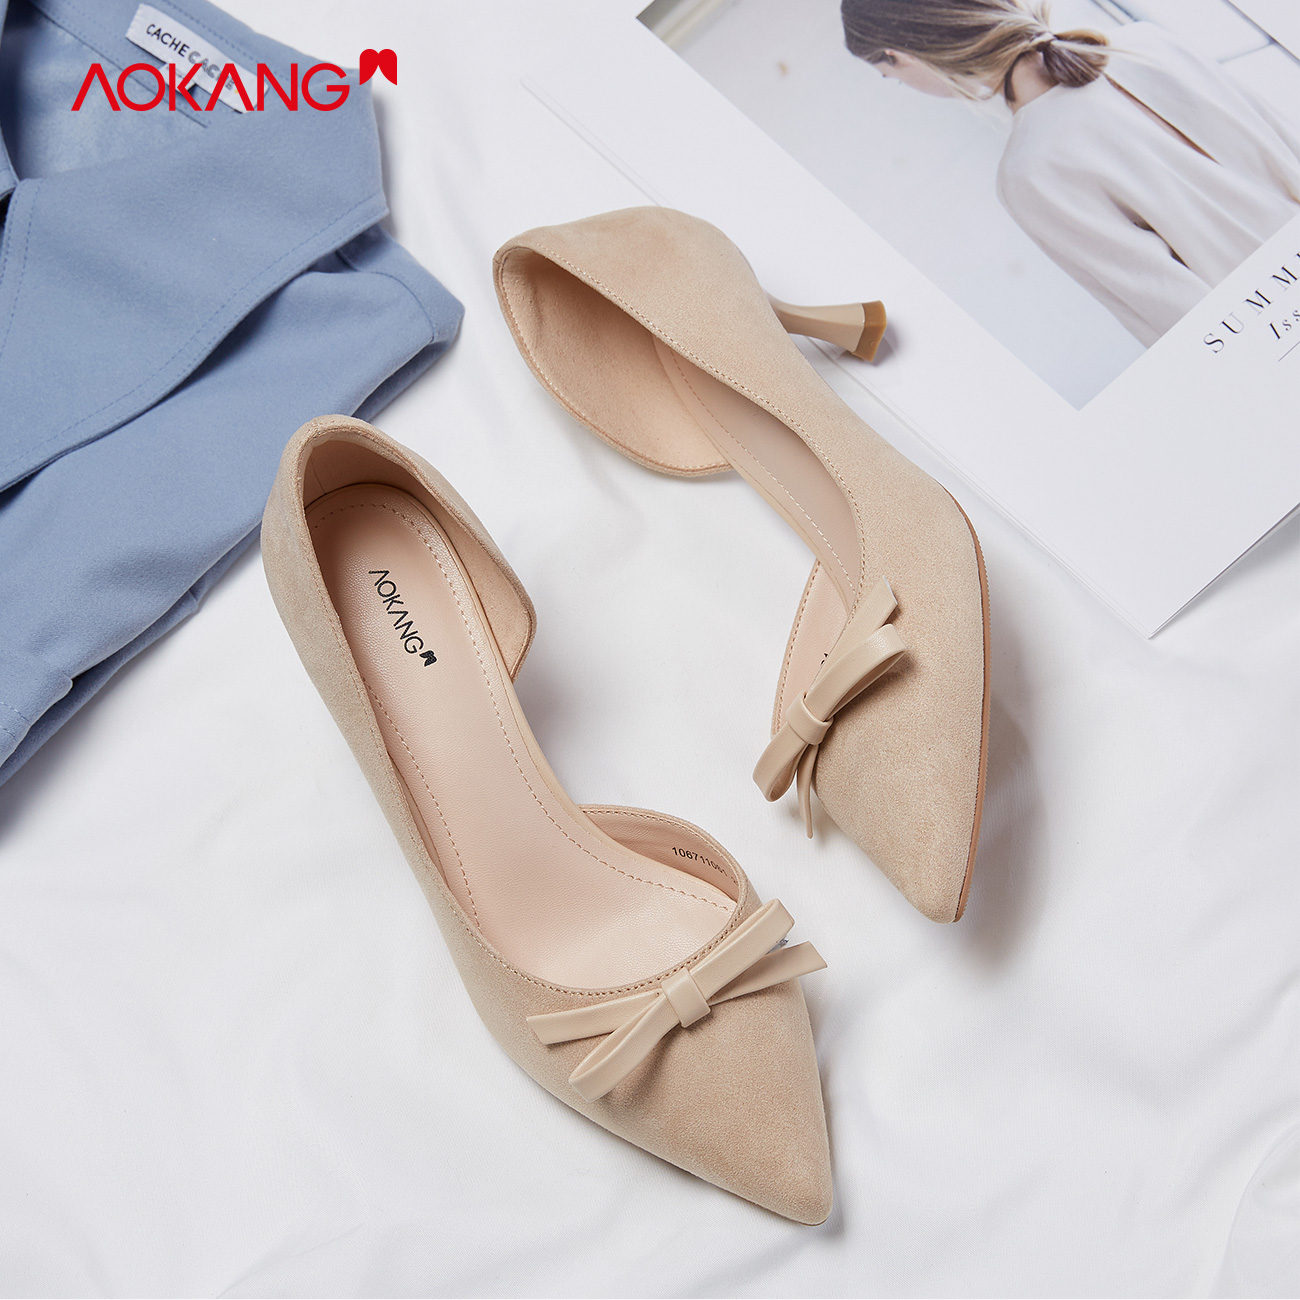 Aokang womens shoes single shoes summer 2020 new pointy bow shallow scoop shoes middle heel flannelette Aosai shoes high heels